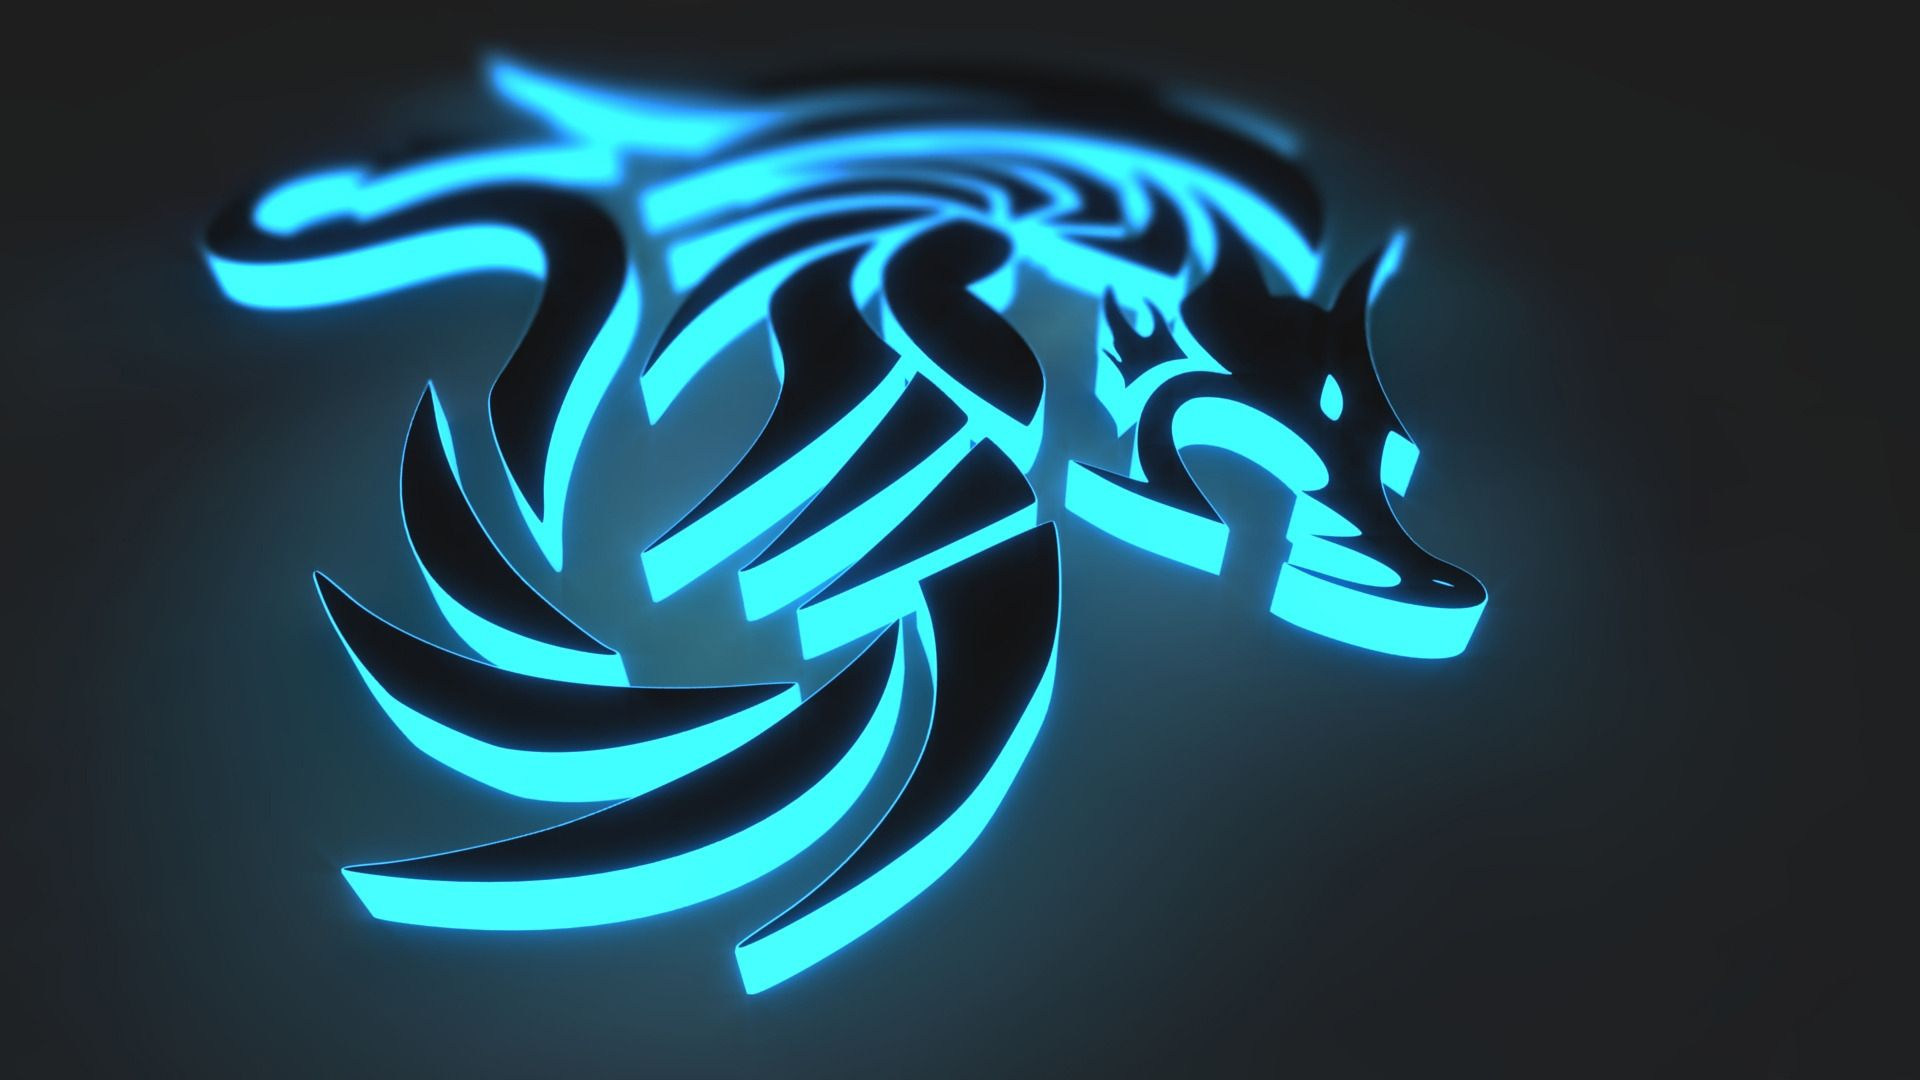 Blue dragon hd wallpapers 7 bluedragonhdwallpapers bluedragon blue dragon hd wallpapers 7 bluedragonhdwallpapers bluedragon hdwallpapers wallpapers voltagebd Gallery